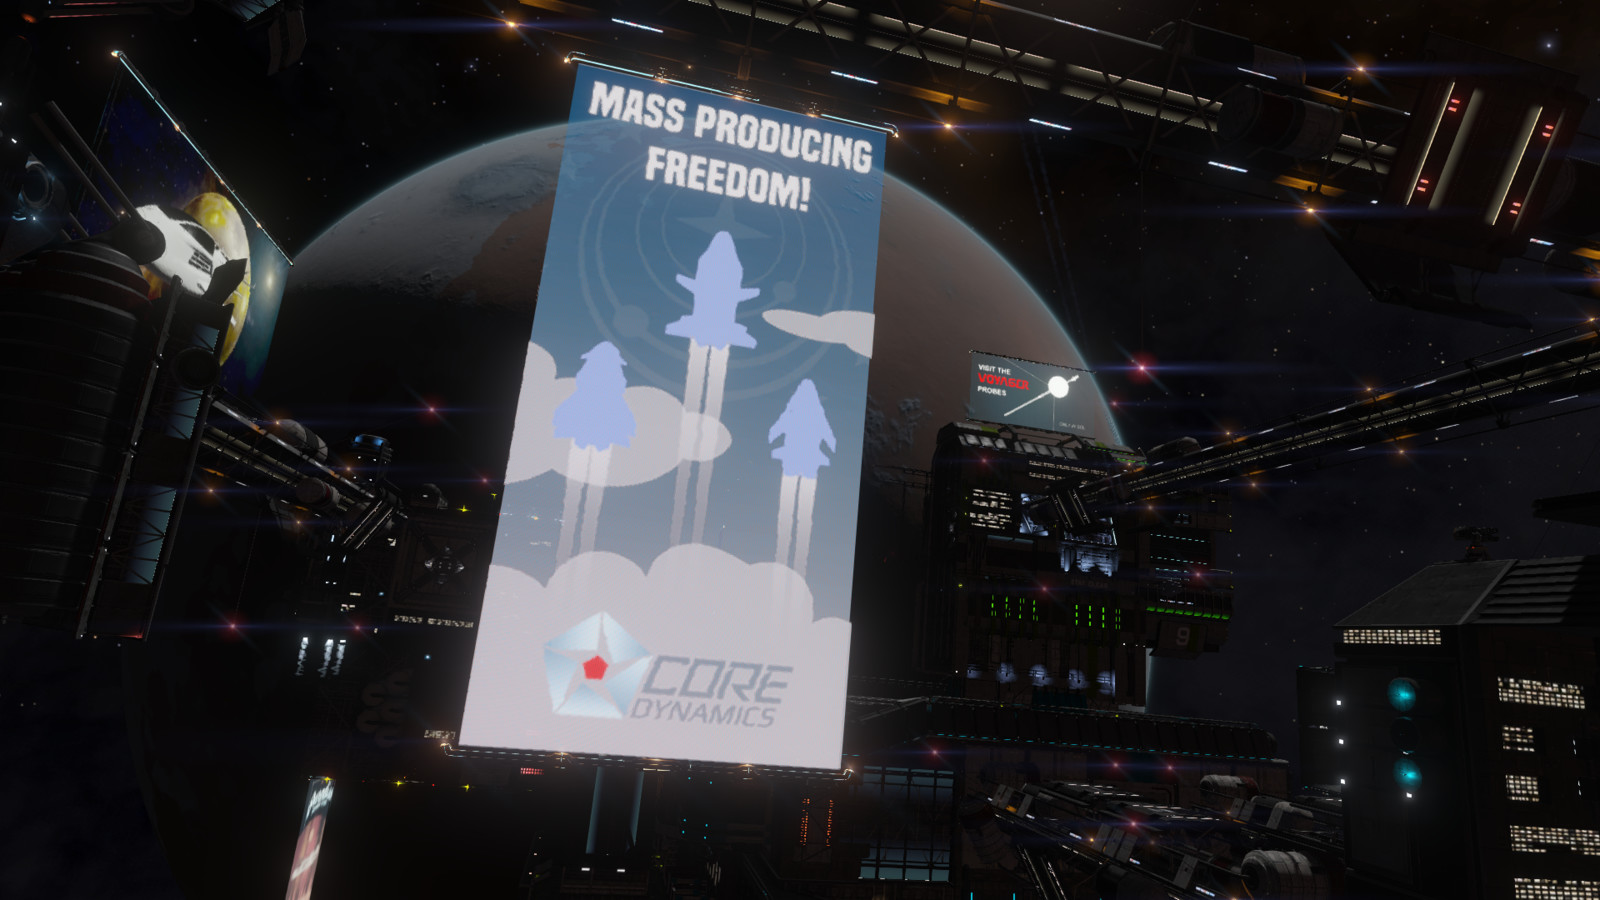 Mass Producing Freedom, in game.